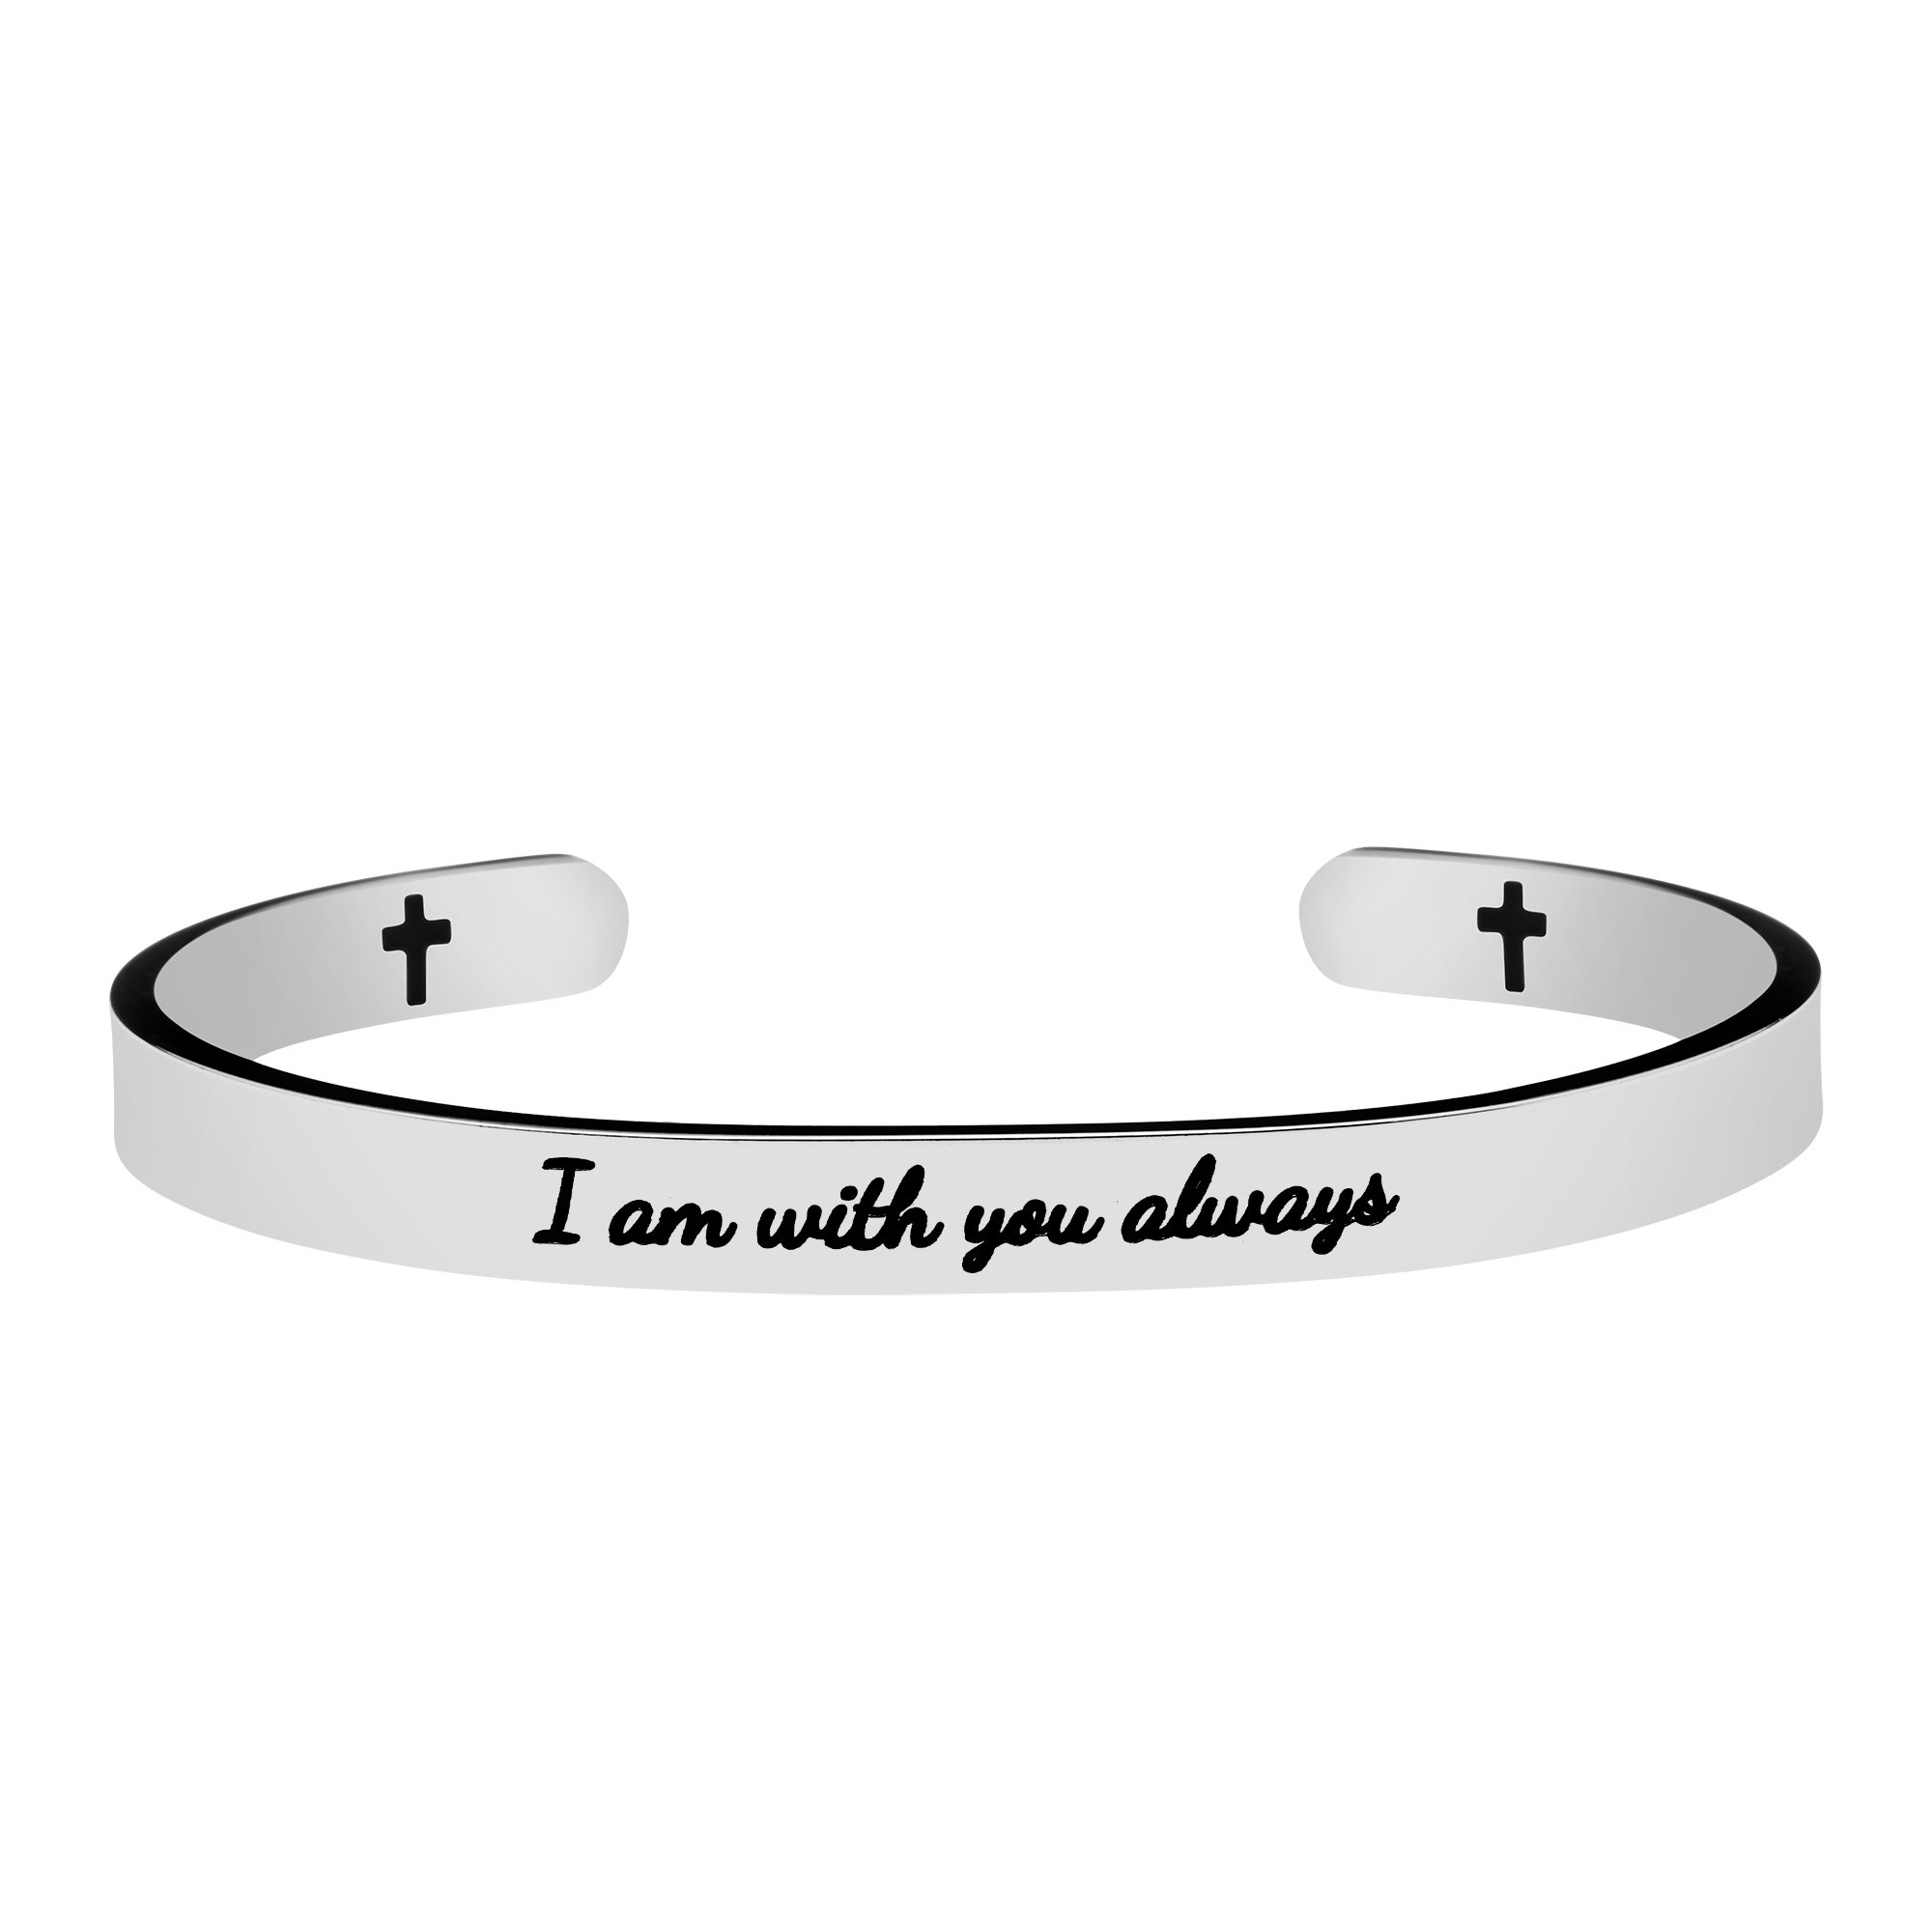 Joycuff Motivational Gift for Friends Religion Cuff Bracelet Bible Verse Jewelry Engraved I Am with You Always